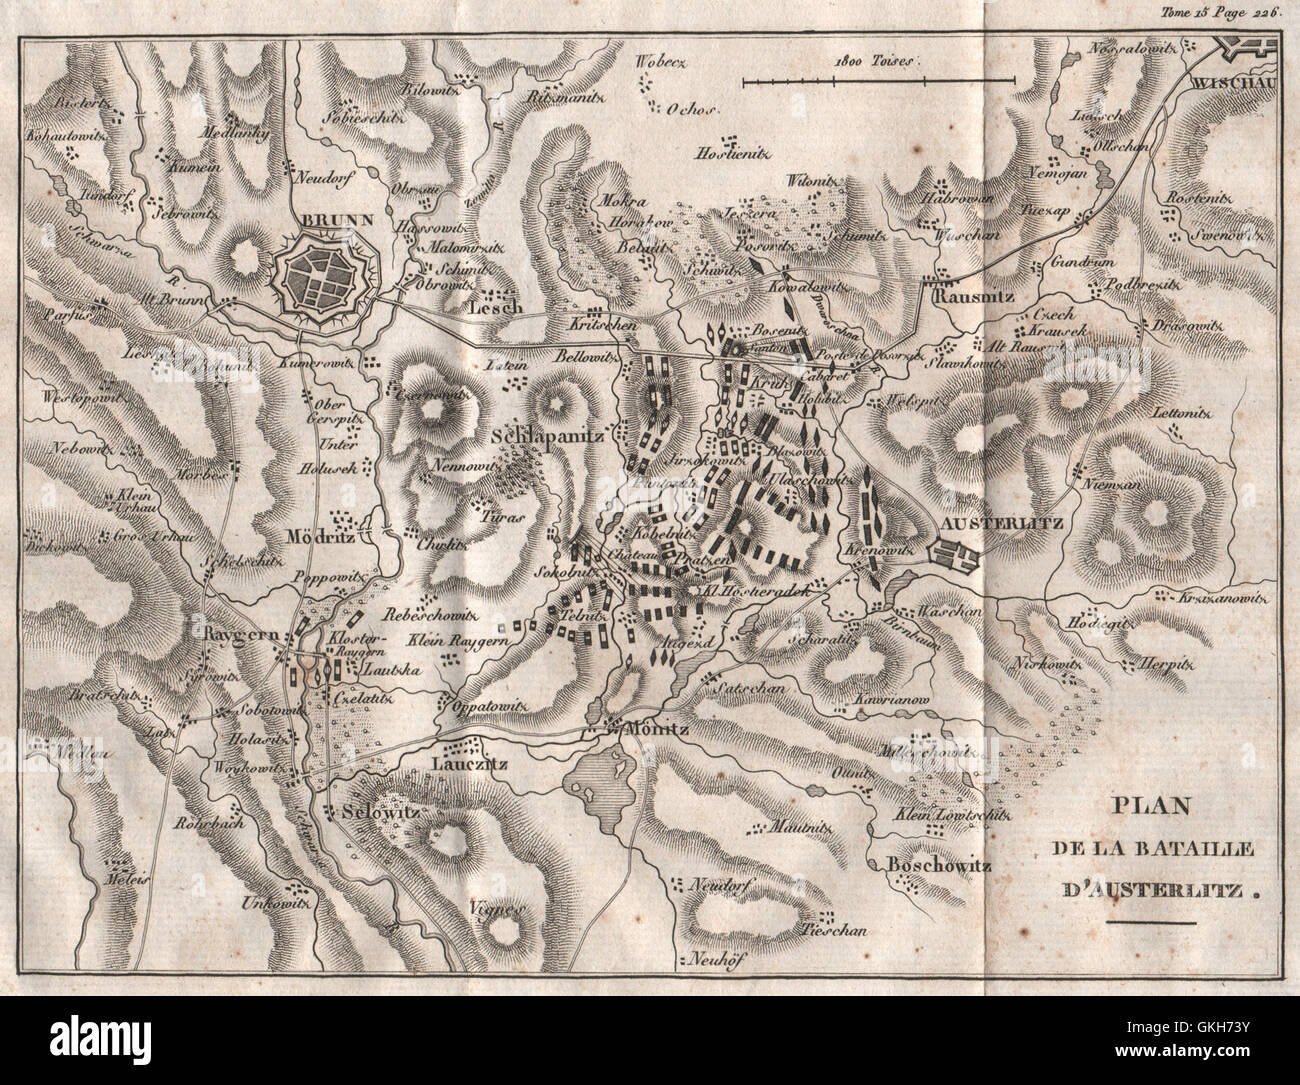 Plan of the BATTLE OF AUSTERLITZ (Slavkov u Brna). Brno. Czech Republic 1819 map - Stock Image